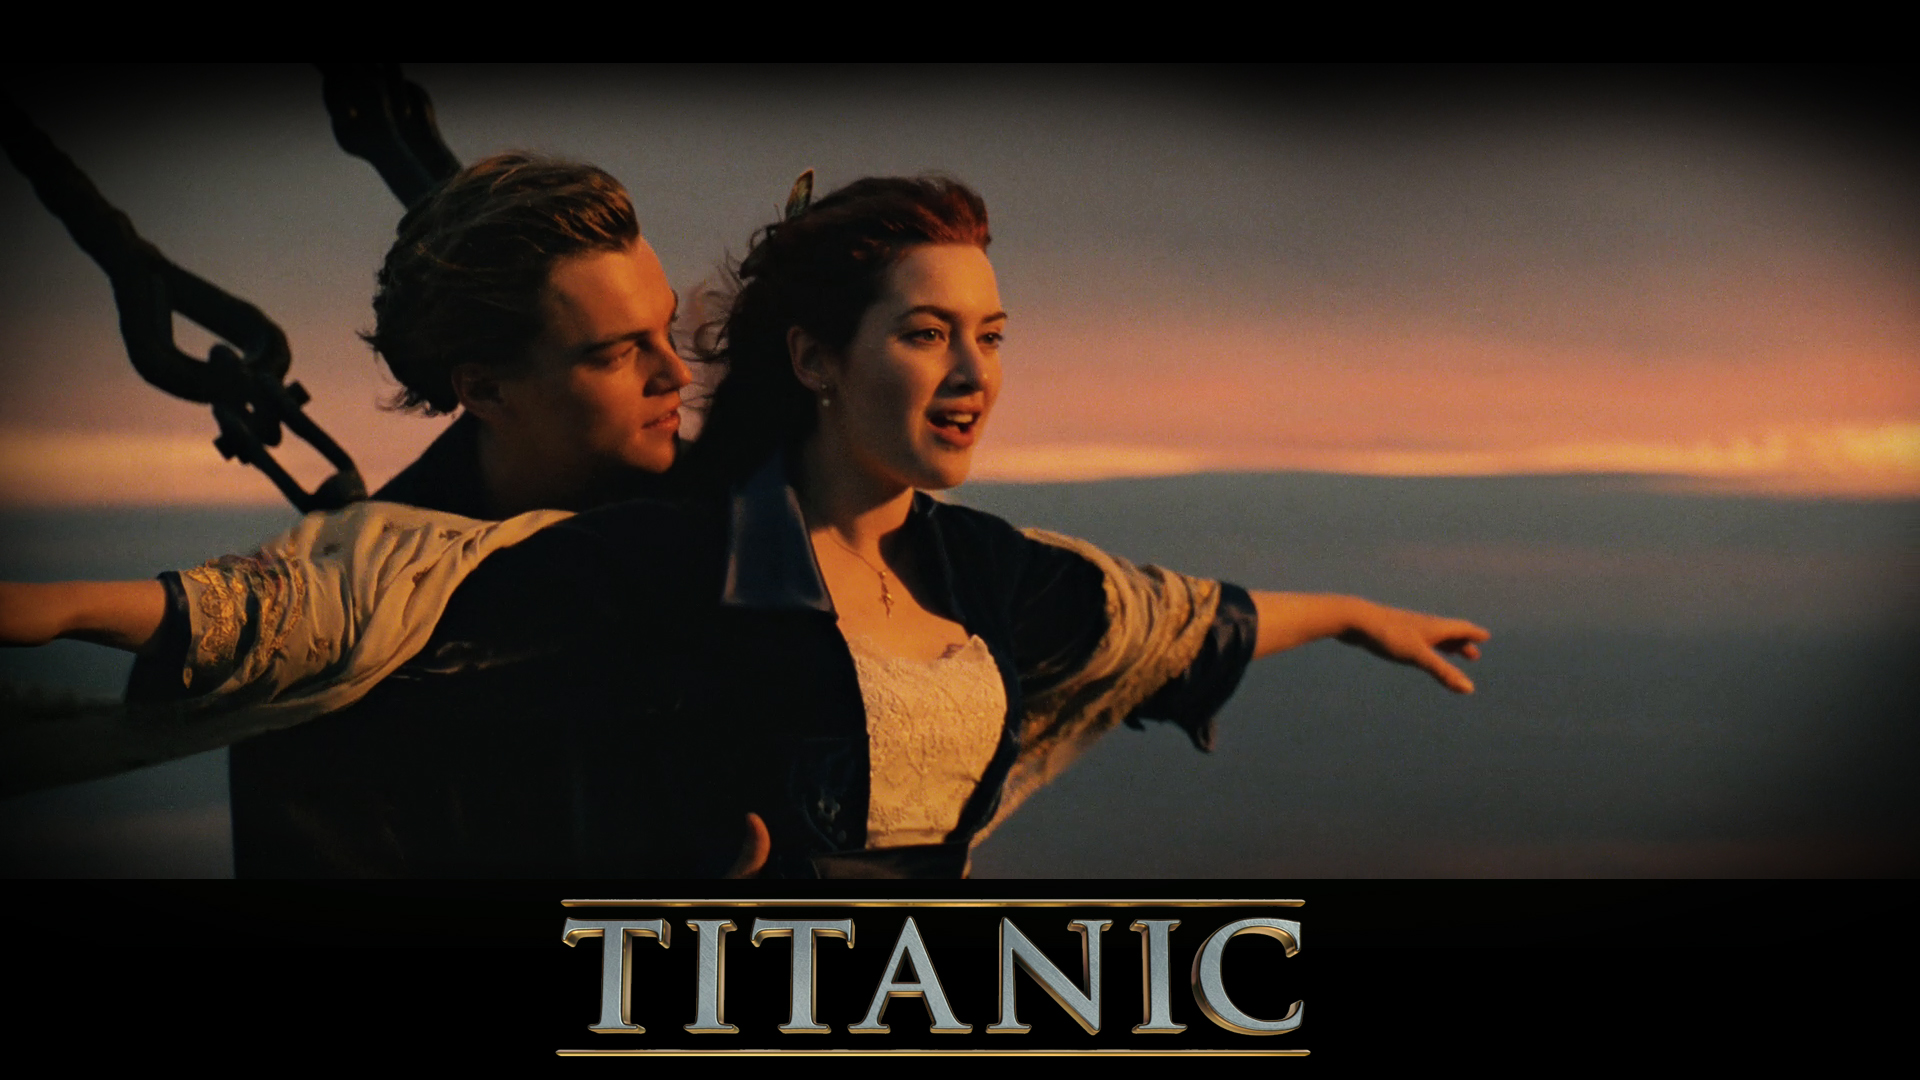 Titanic 3D wallpaper 8